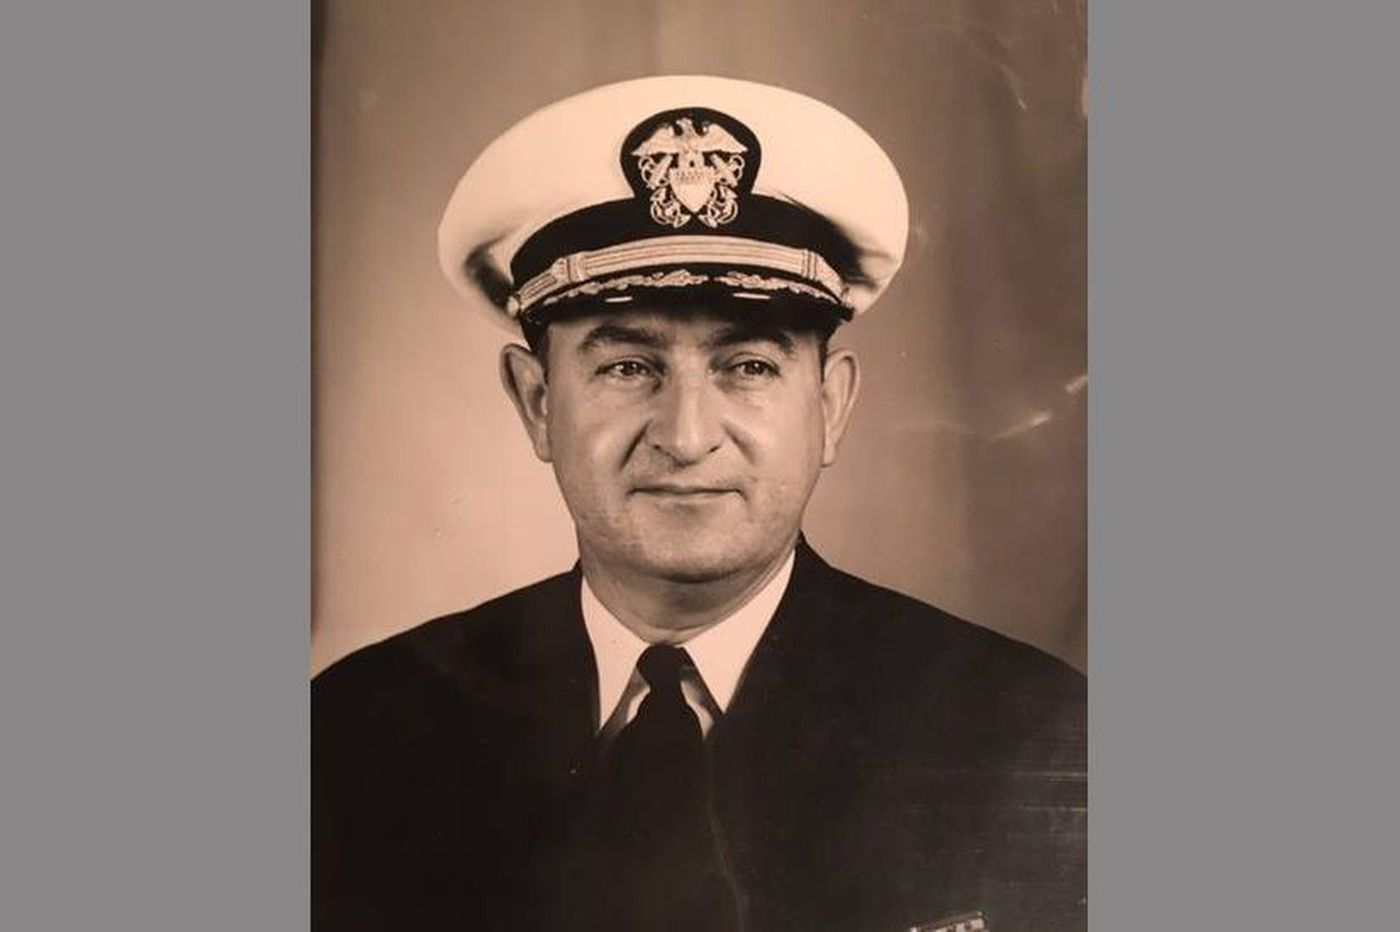 The Philly sports fan who became a WWII hero | Frank's Place